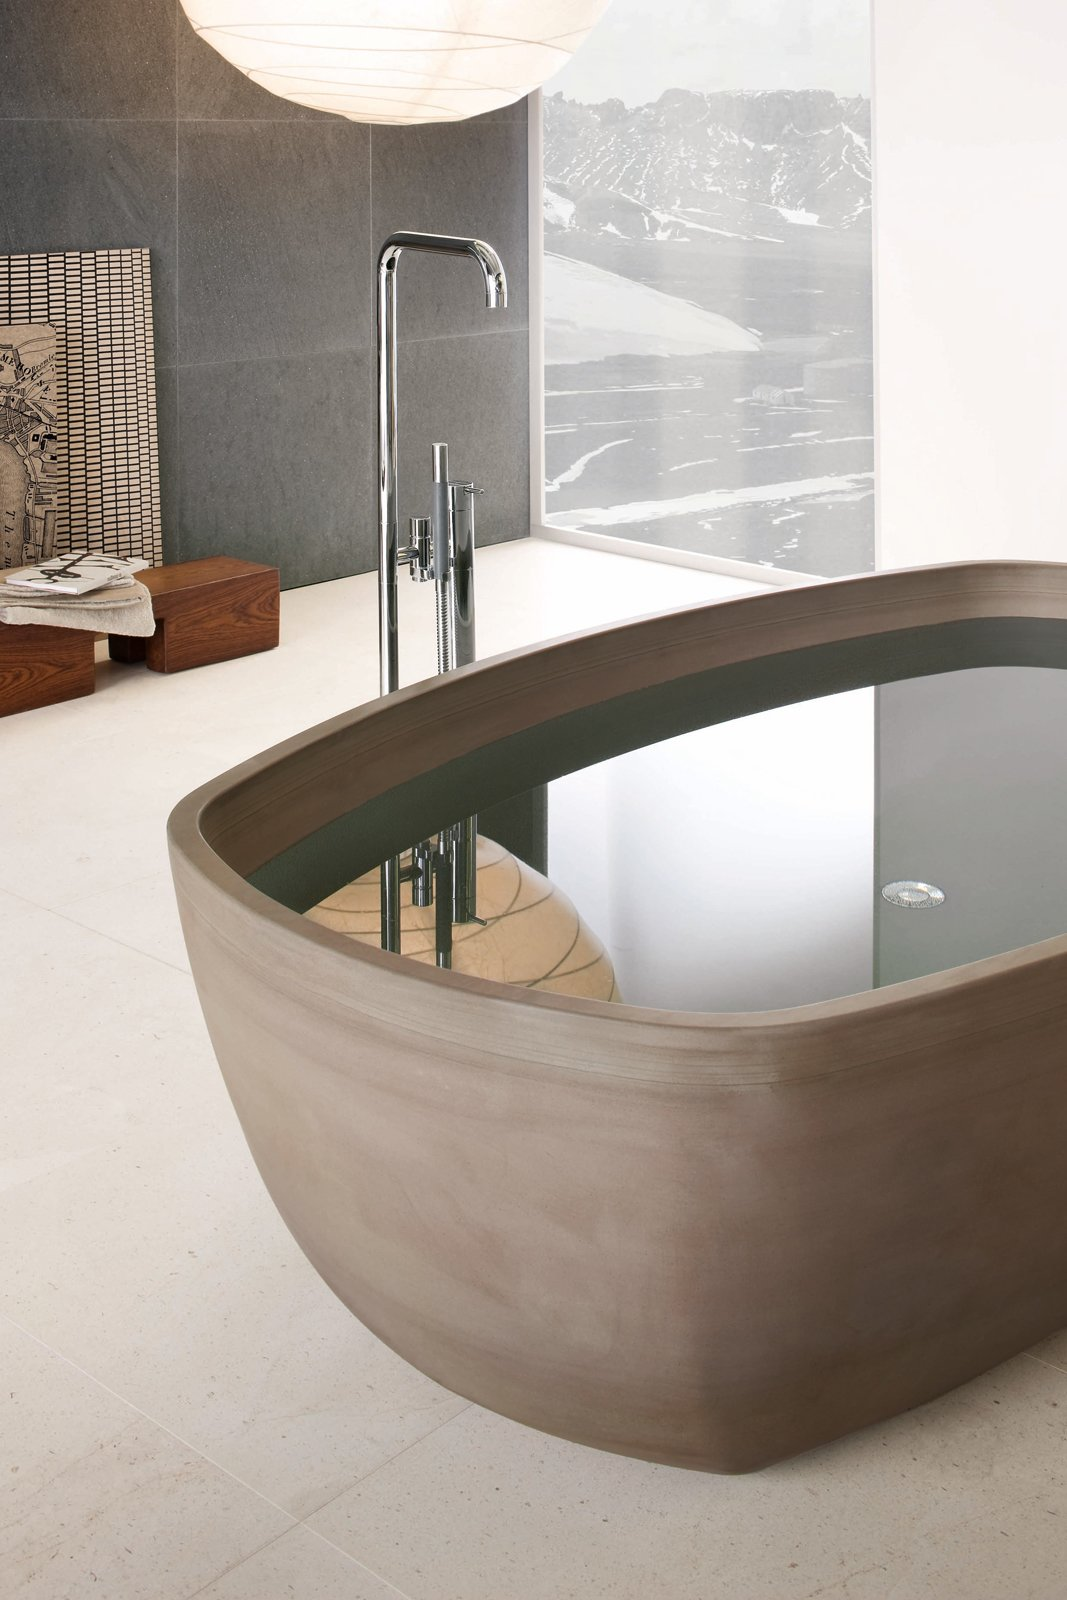 Bath Room and Freestanding Tub Inkstone bathtub, Sand Brown stone.  Best Photos from Inky Inspiration